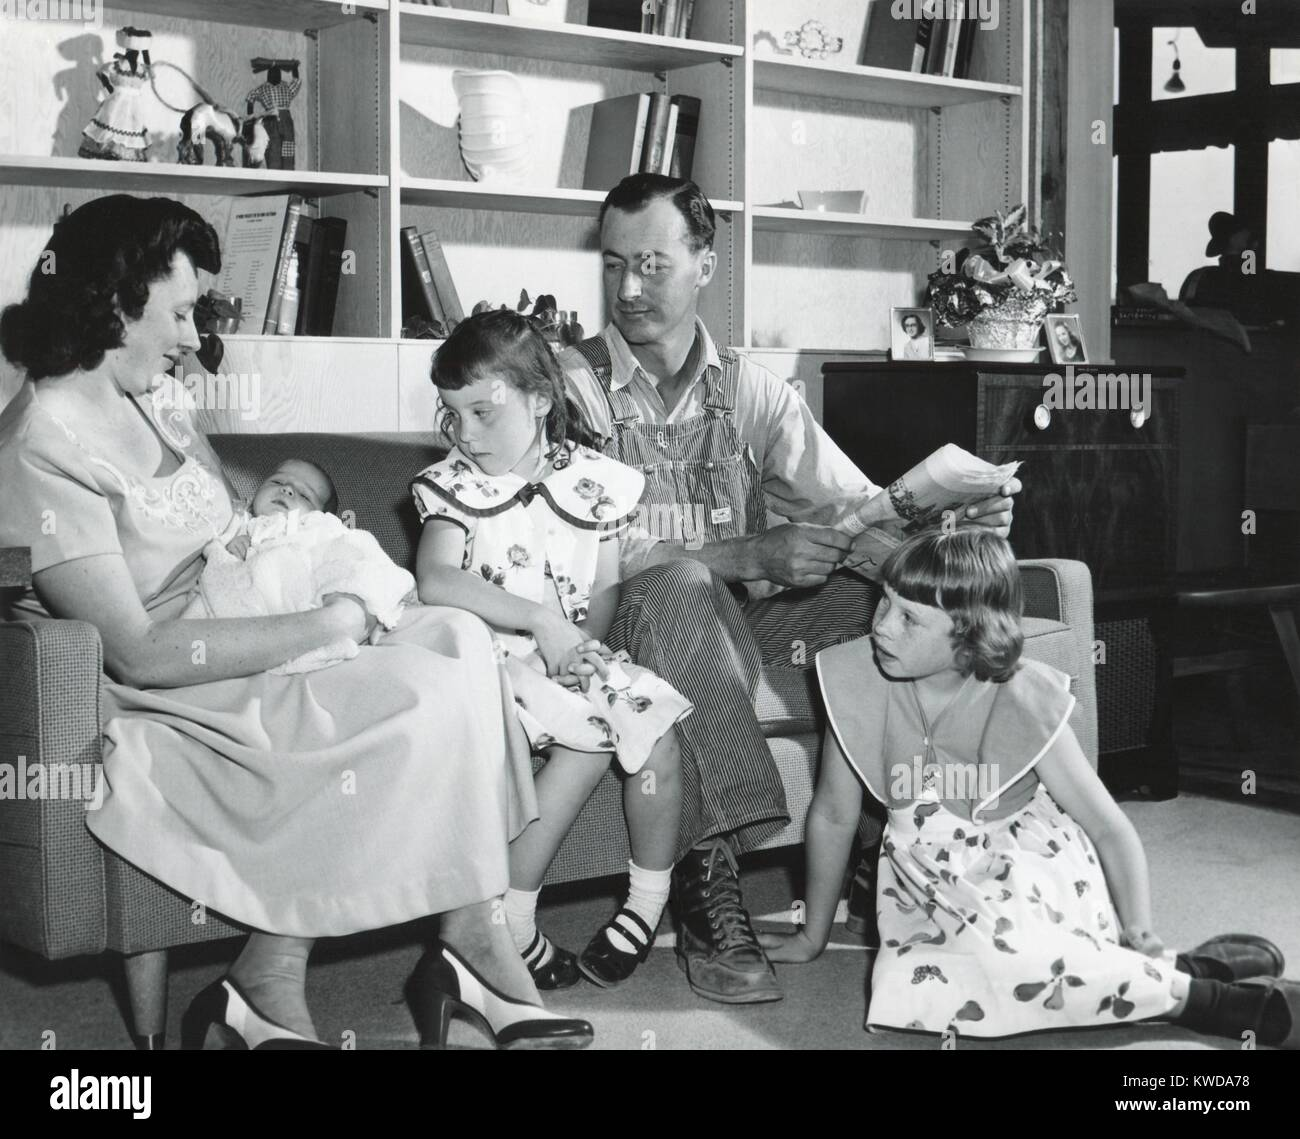 1950s American family at a new fashionable home in Washington State (BSLOC_2016_7_19) - Stock Image